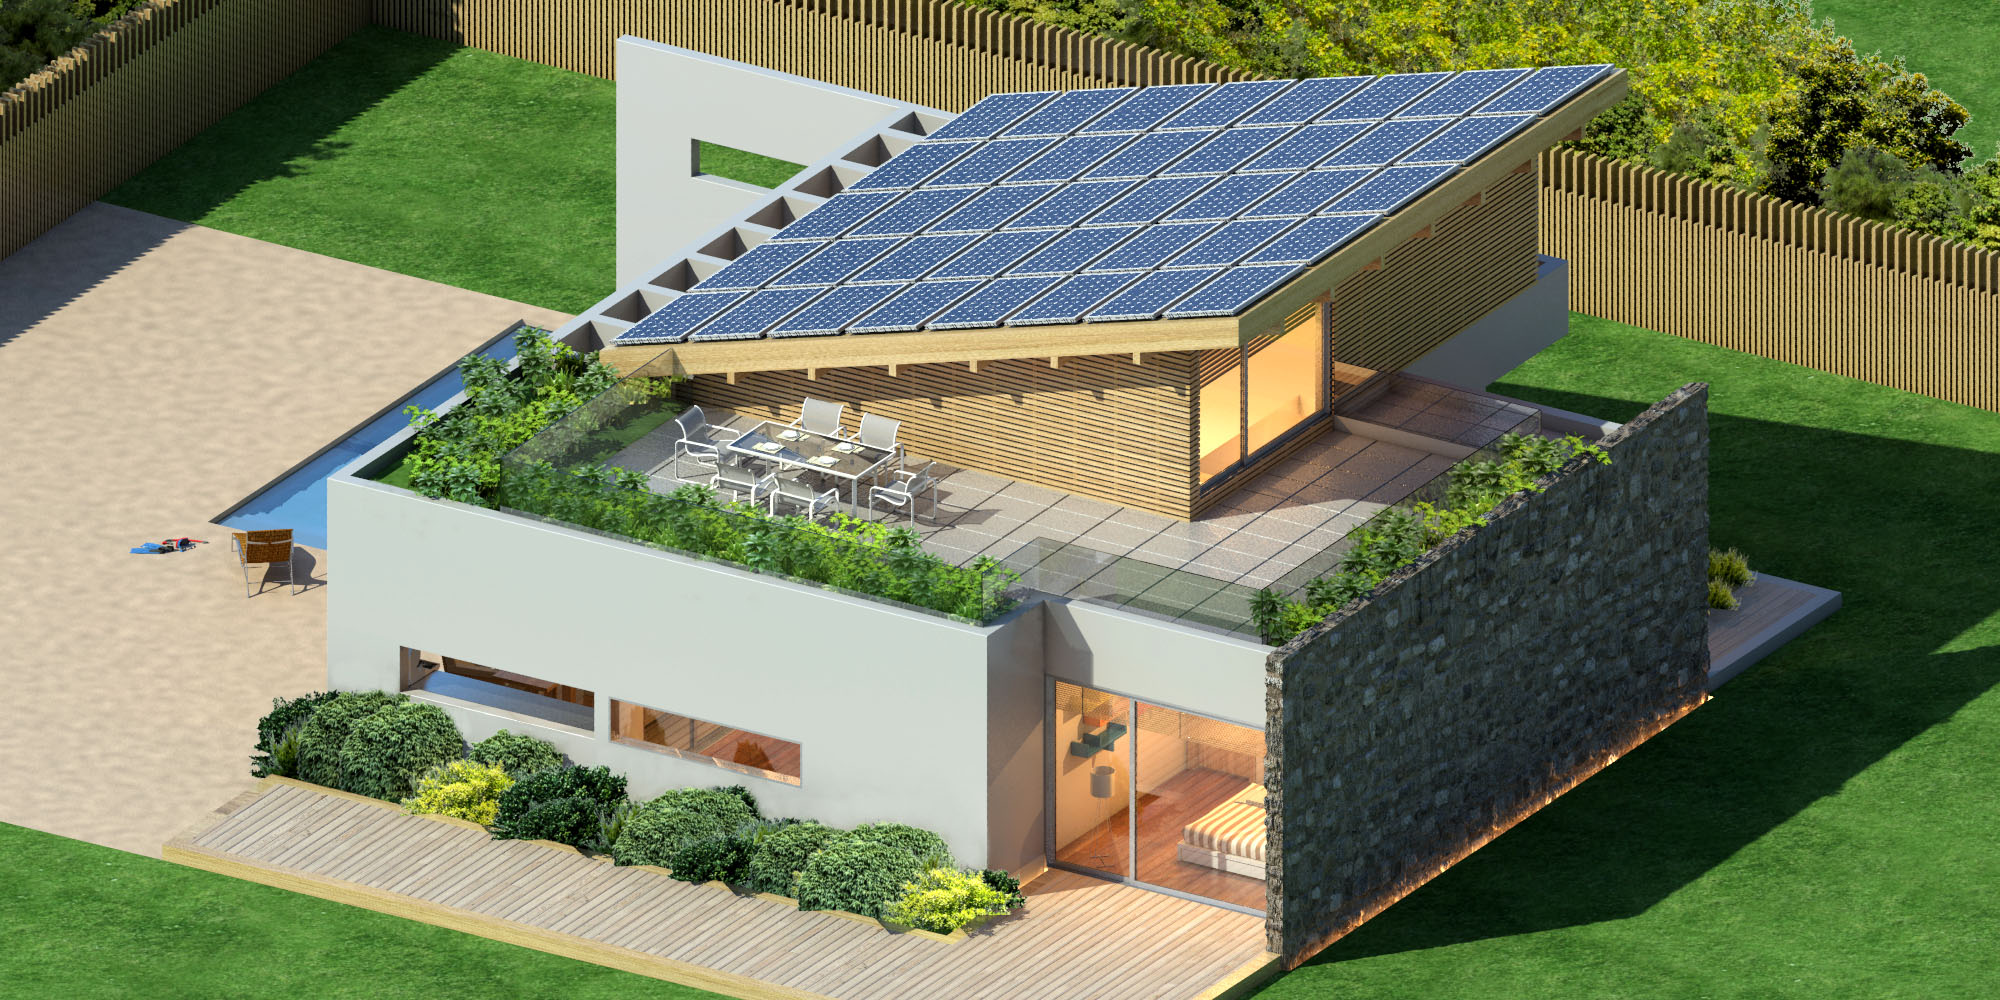 Arzumanidis investments new build solar house in greece for Modern massiv bauen halle